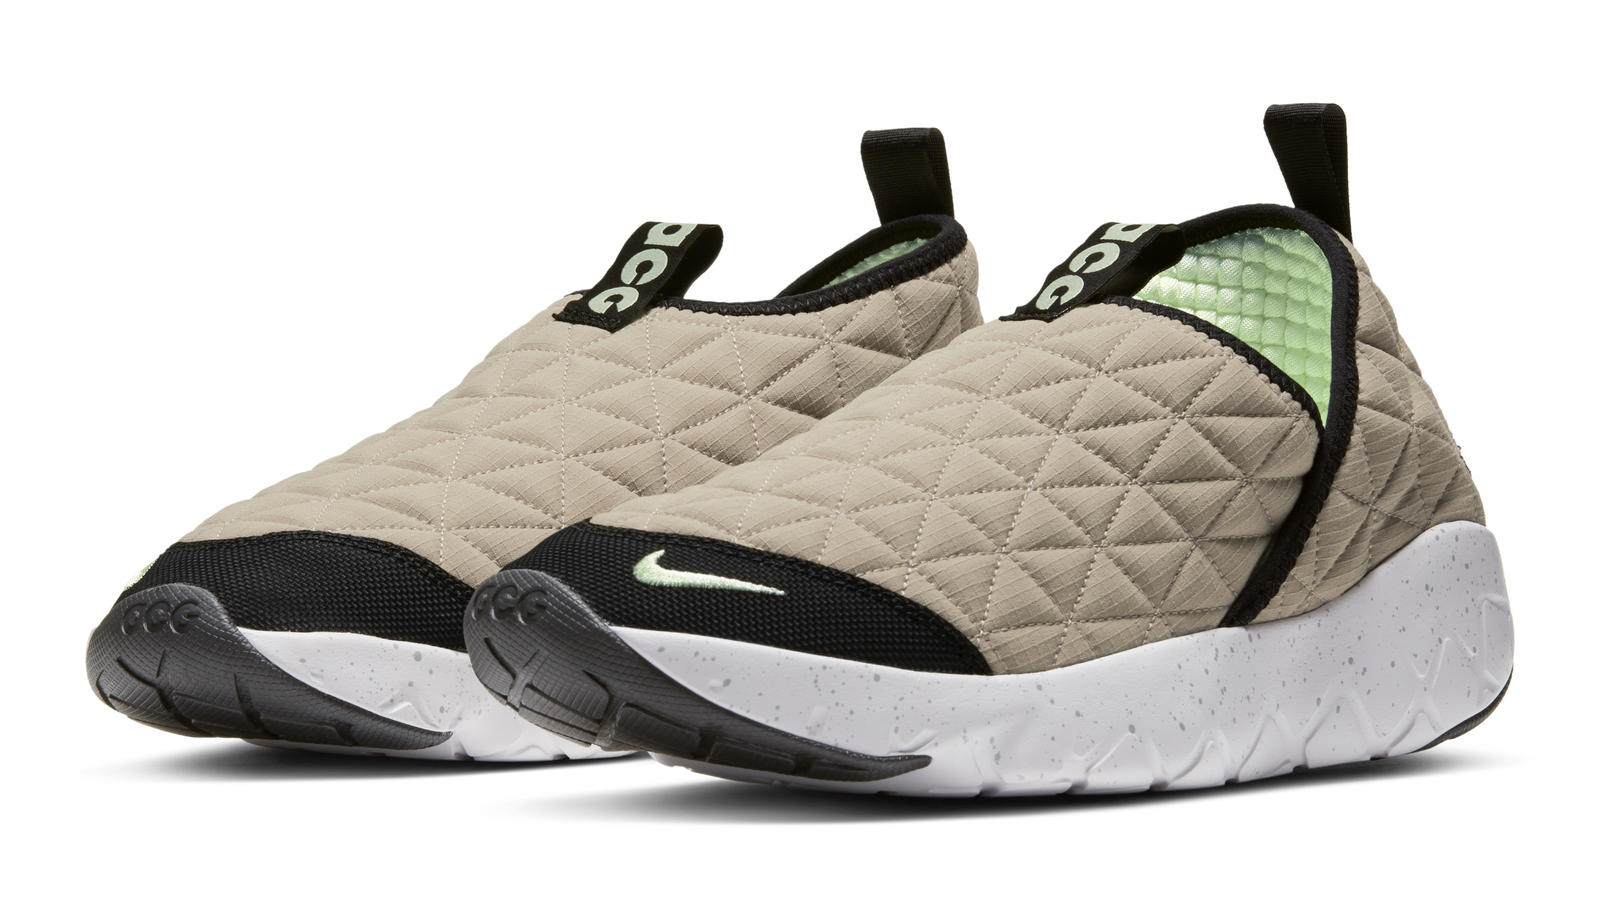 Nike ACG Moc 3.0 Official Images and Release Date 5